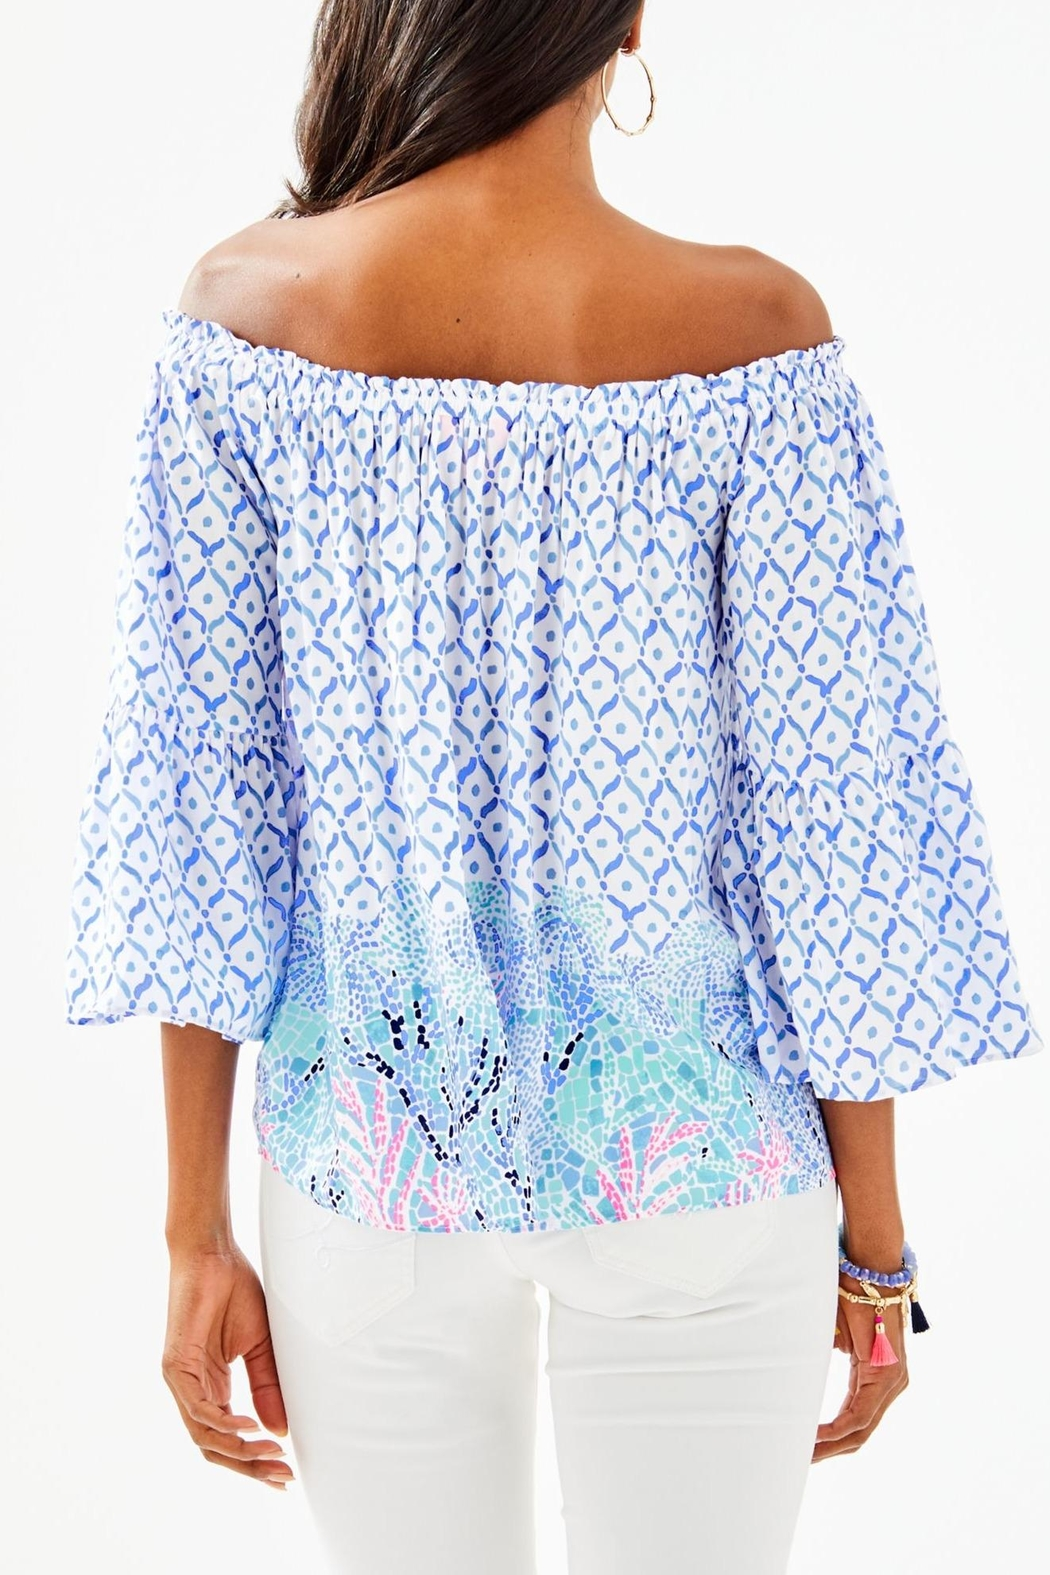 Lilly Pulitzer Nevie Top - Front Full Image